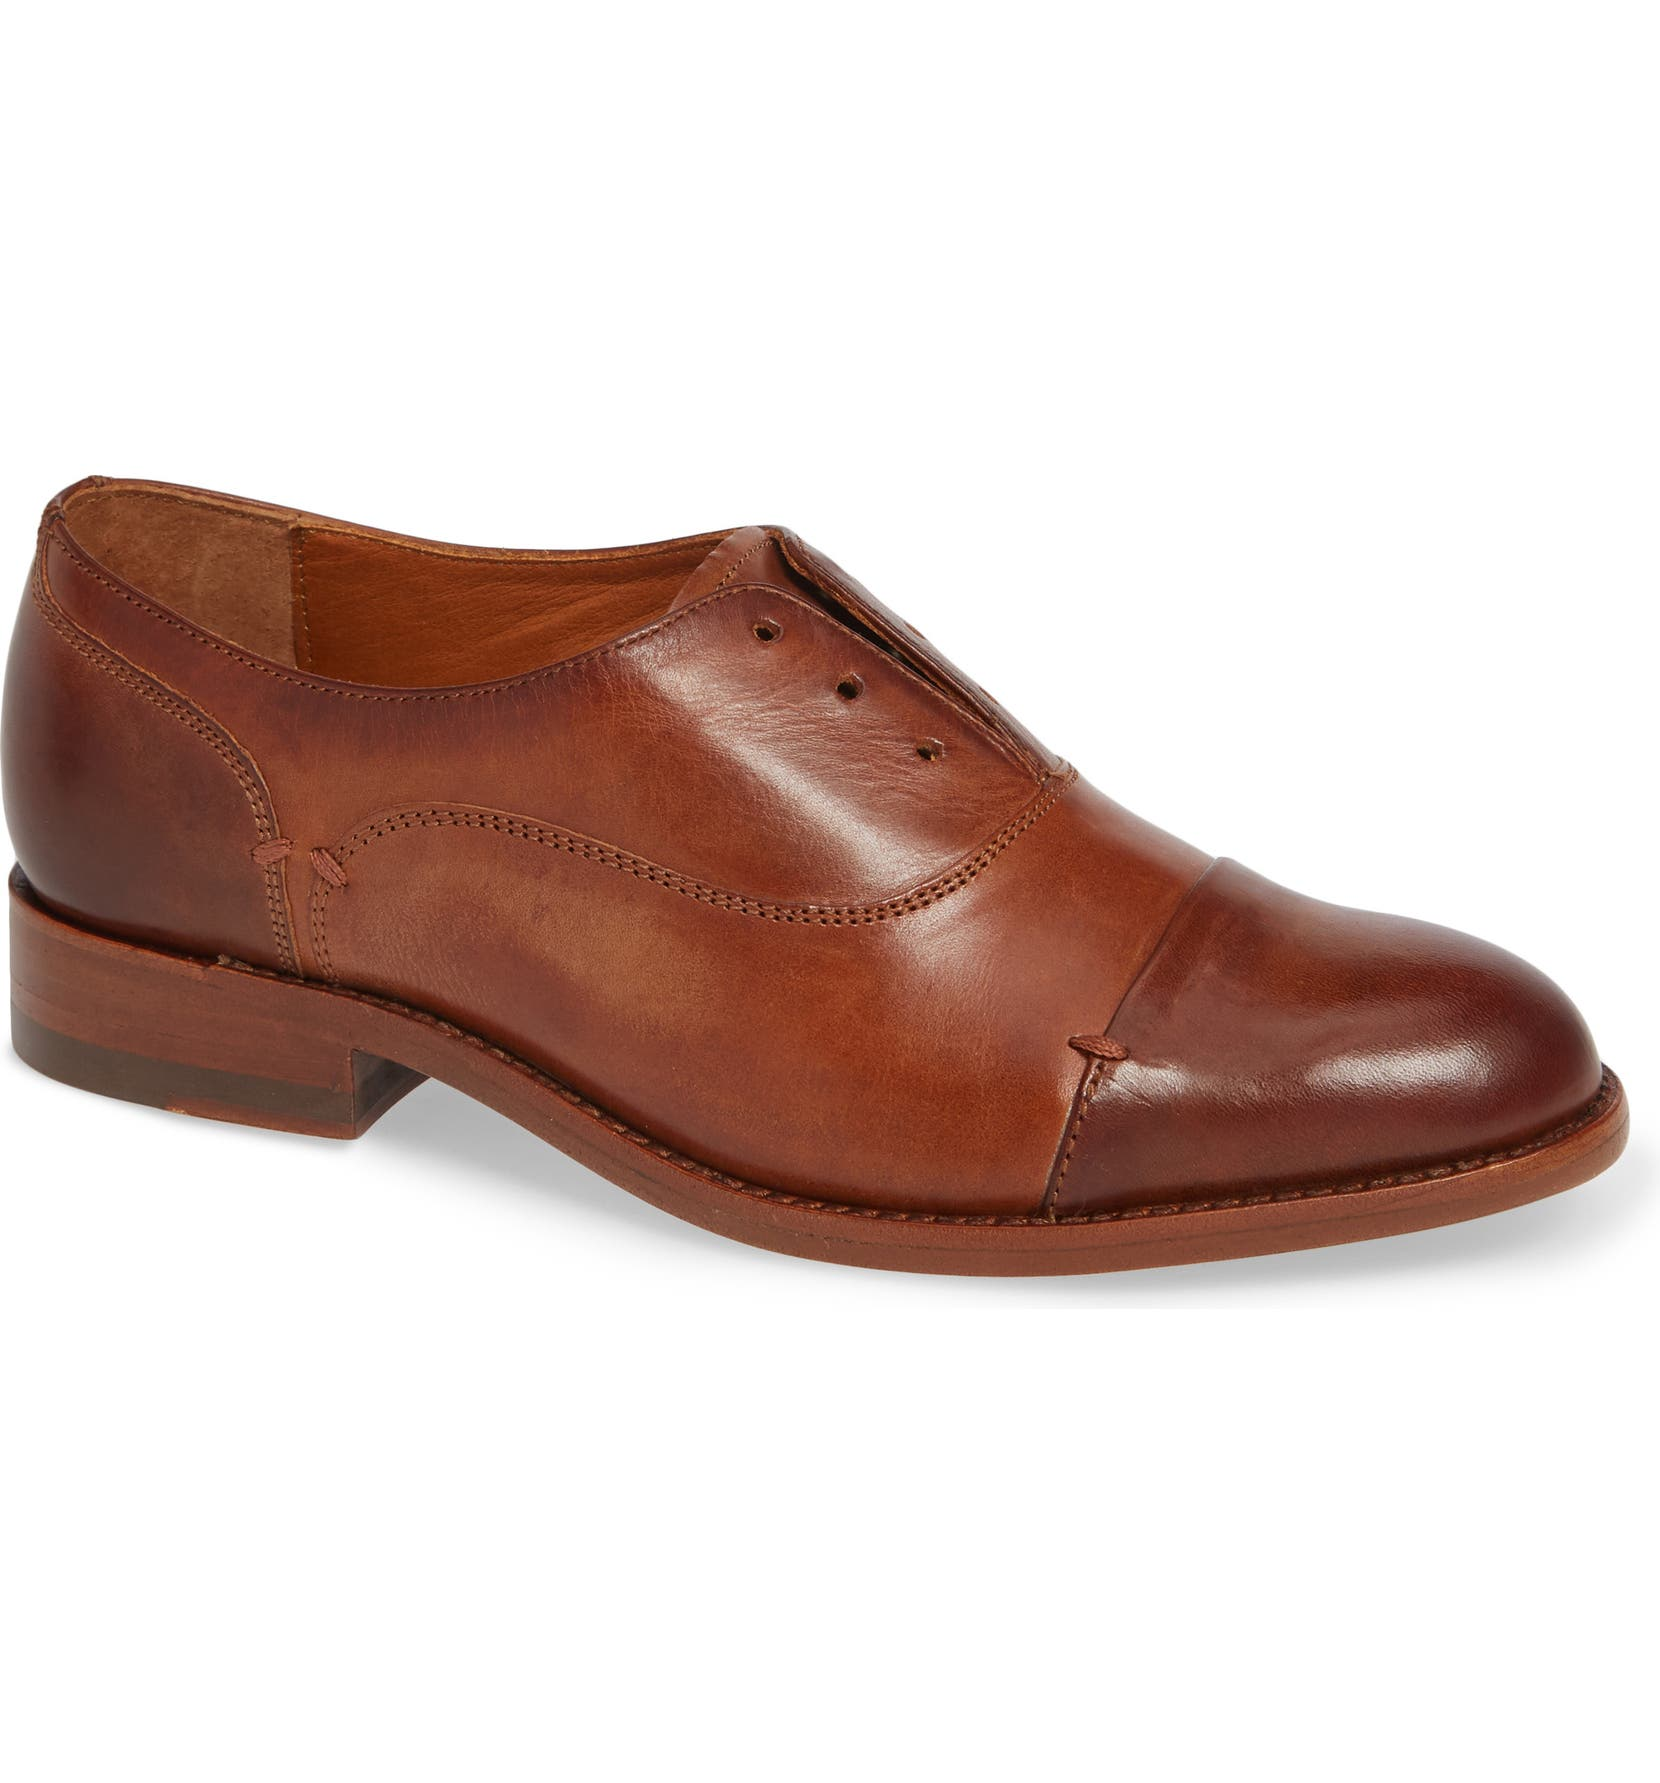 Austen Optional Lace-Up Oxford,                         Main,                         color, COGNAC LEATHER